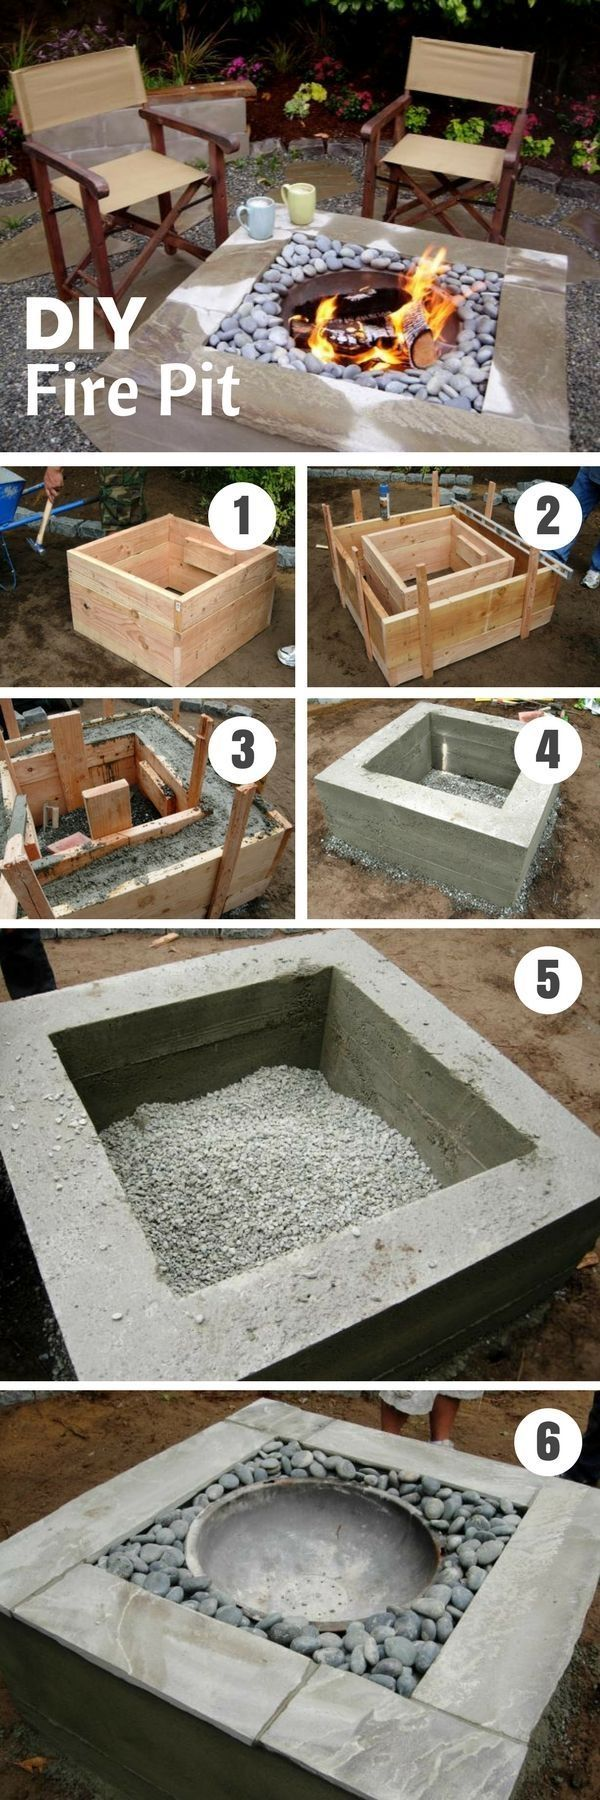 Check out the tutorial on how to make a DIY modern style fire pit @istandarddesign by rhonda.white.52206